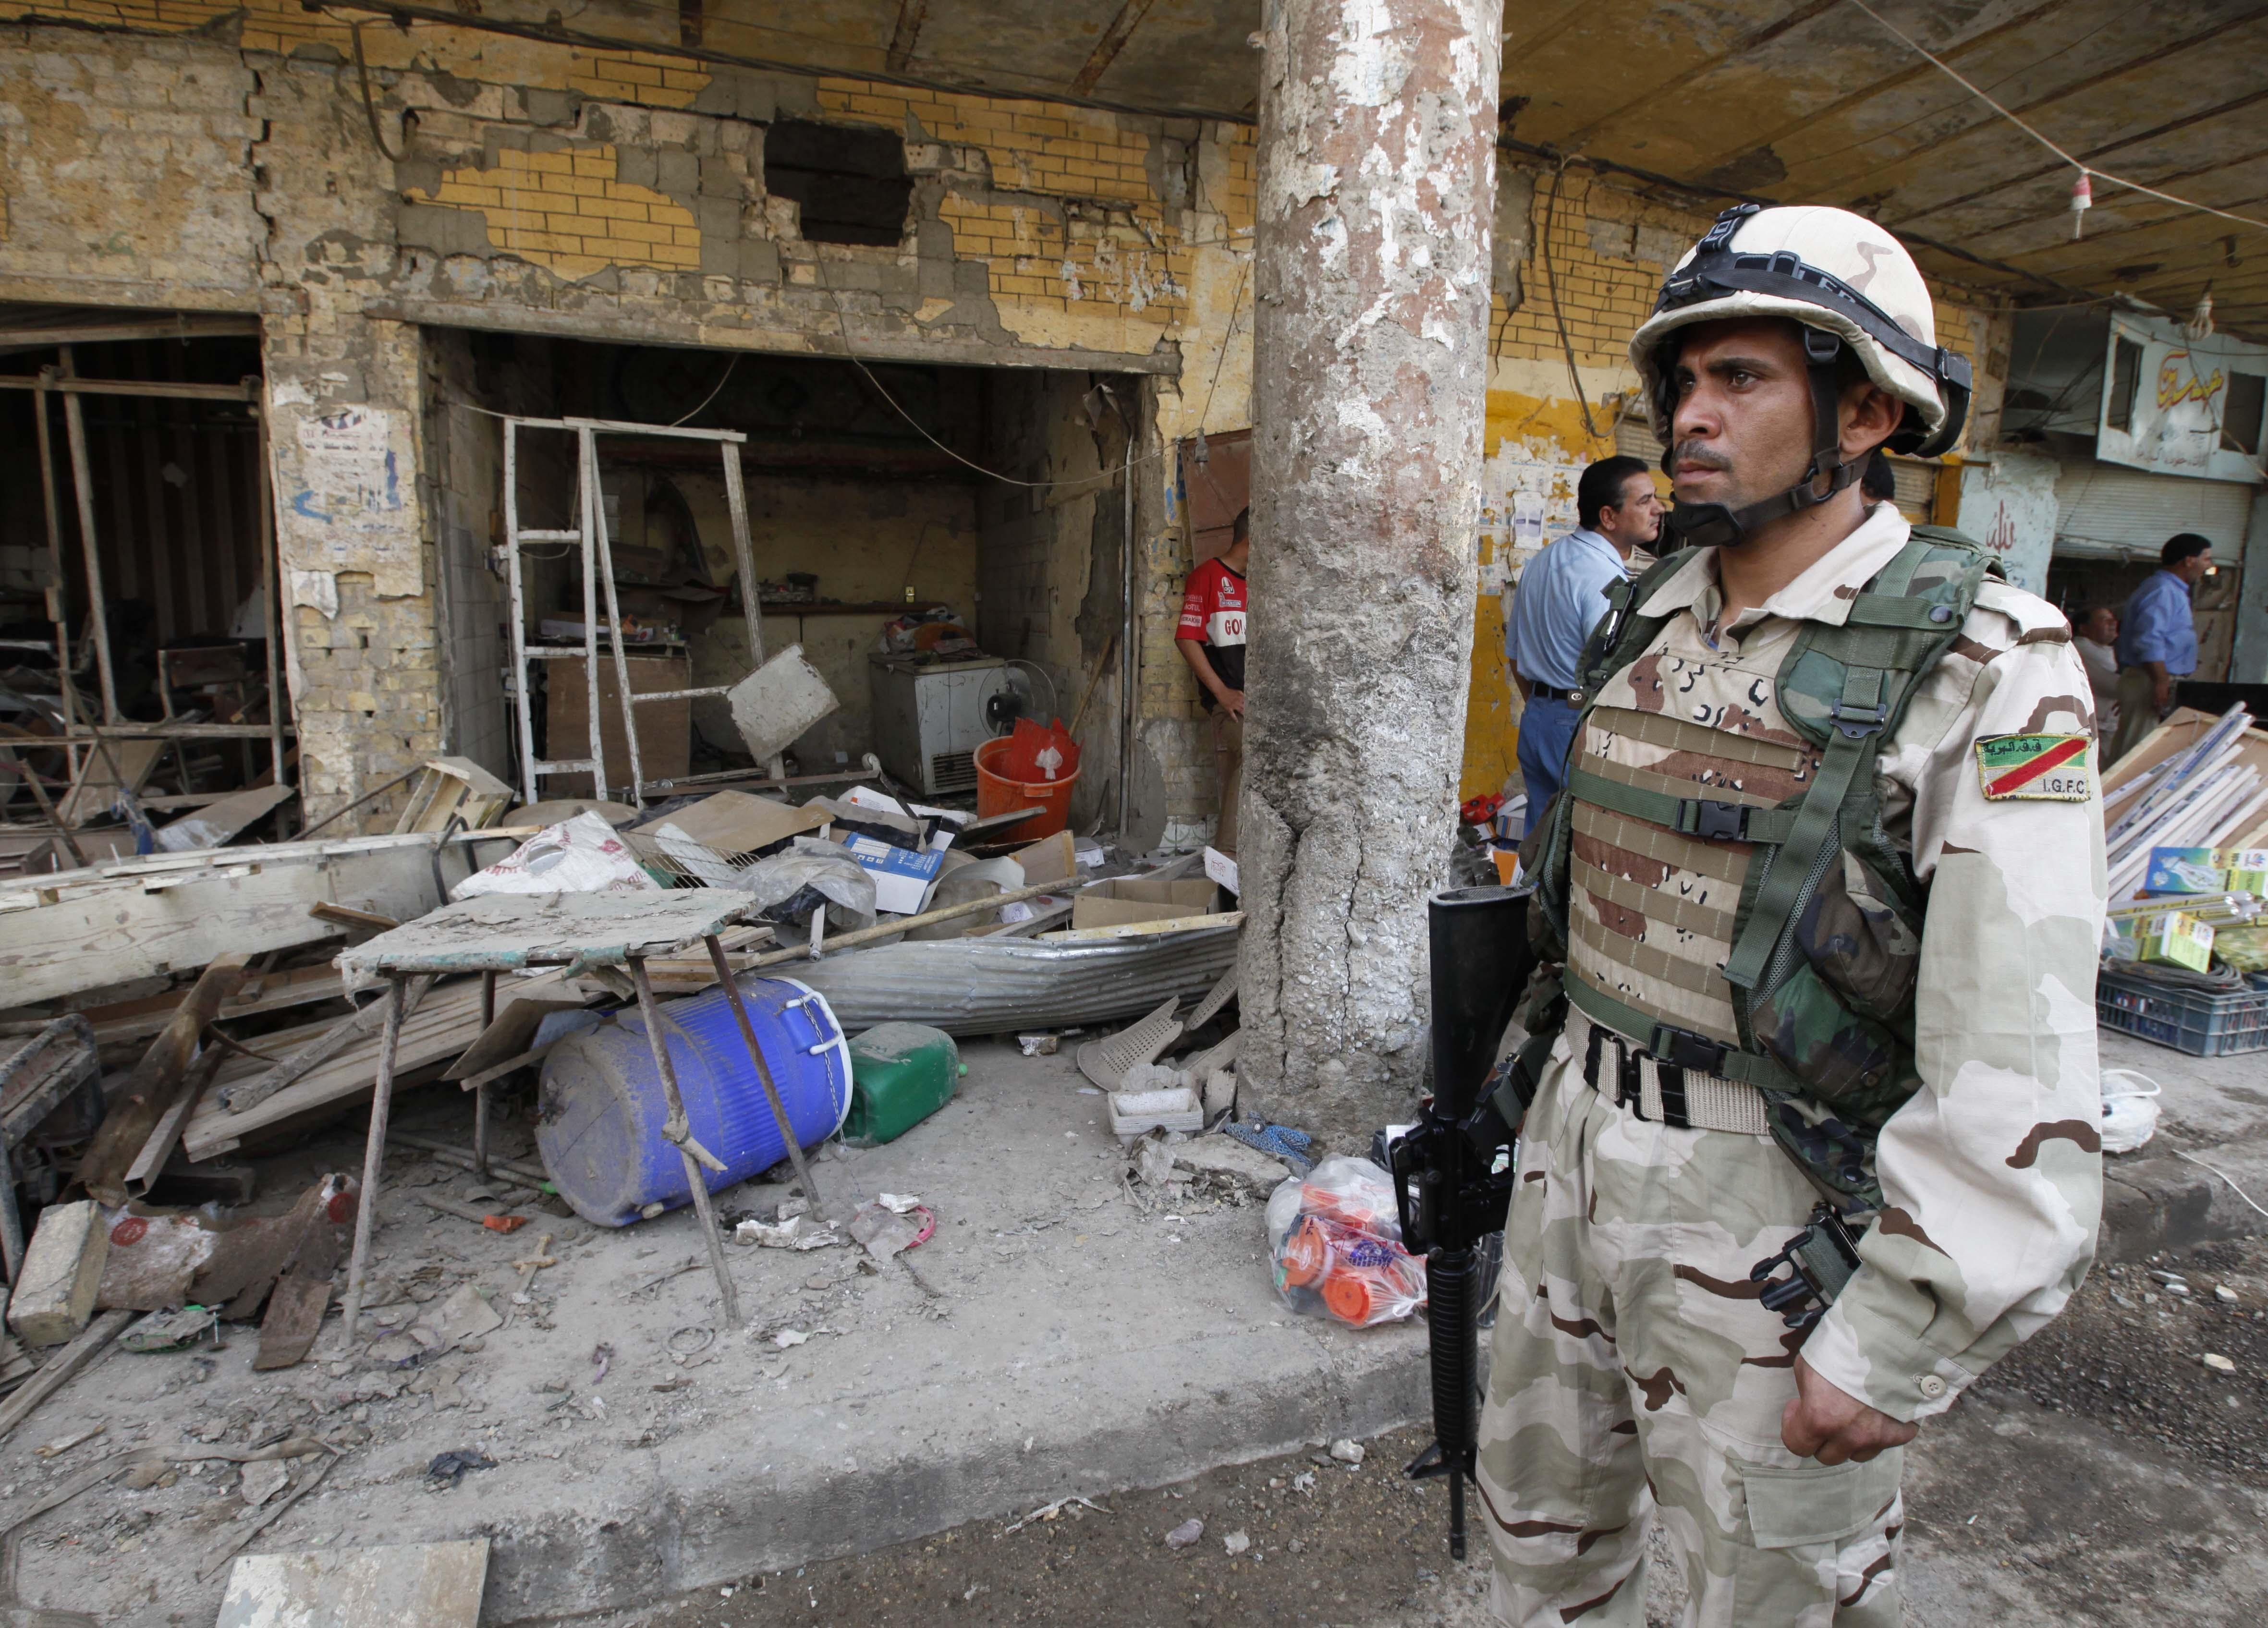 An Iraqi solider stands guard at the scene of a car bomb attack in Kut, southeast of Baghdad. A car bomb ripped through an outdoor market in a mainly Shiite city southeast of Baghdad in the deadliest of a series of attacks that killed and injured scores on Tuesday, officials said. (AP)